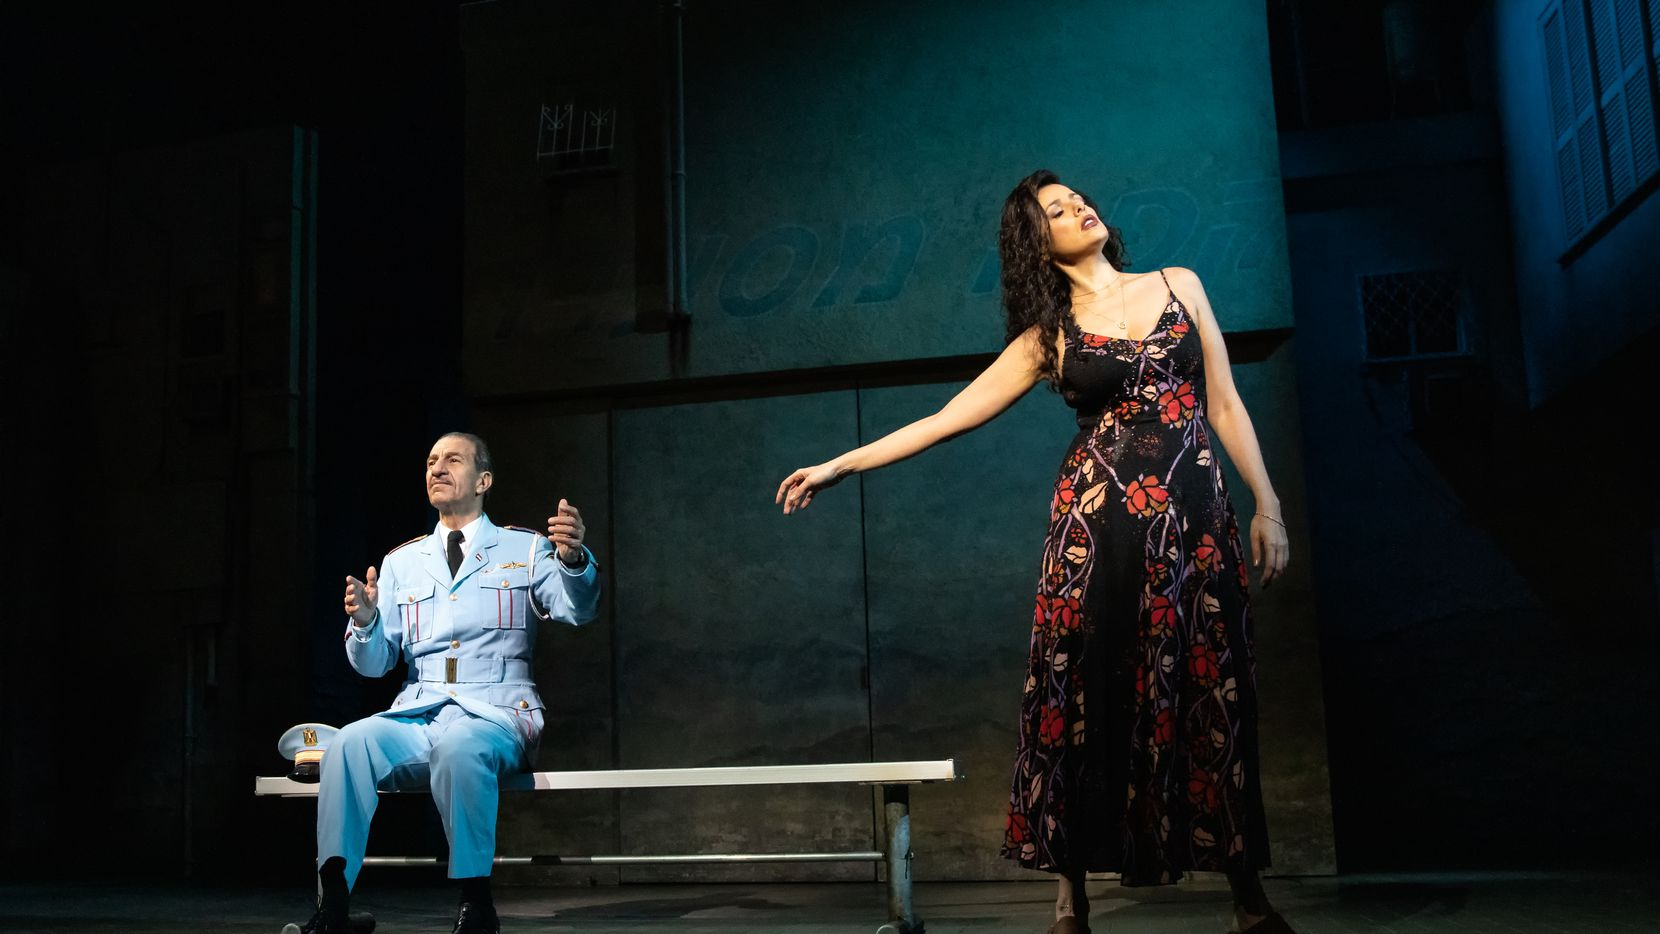 """Col. Tewfiq Zakaria (Sasson Gabay), the leader of an Egyptian police band, meets cafe owner Dina (Janet Dacal) when his group accidentally arrives in her small Israeli desert town in the hit Broadway musical """"The Band's Visit,"""" now on tour. The show runs Feb. 4-23 at Winspear Opera House, co-presented by Dallas Summer Musicals and the AT&T Performing Arts Center."""